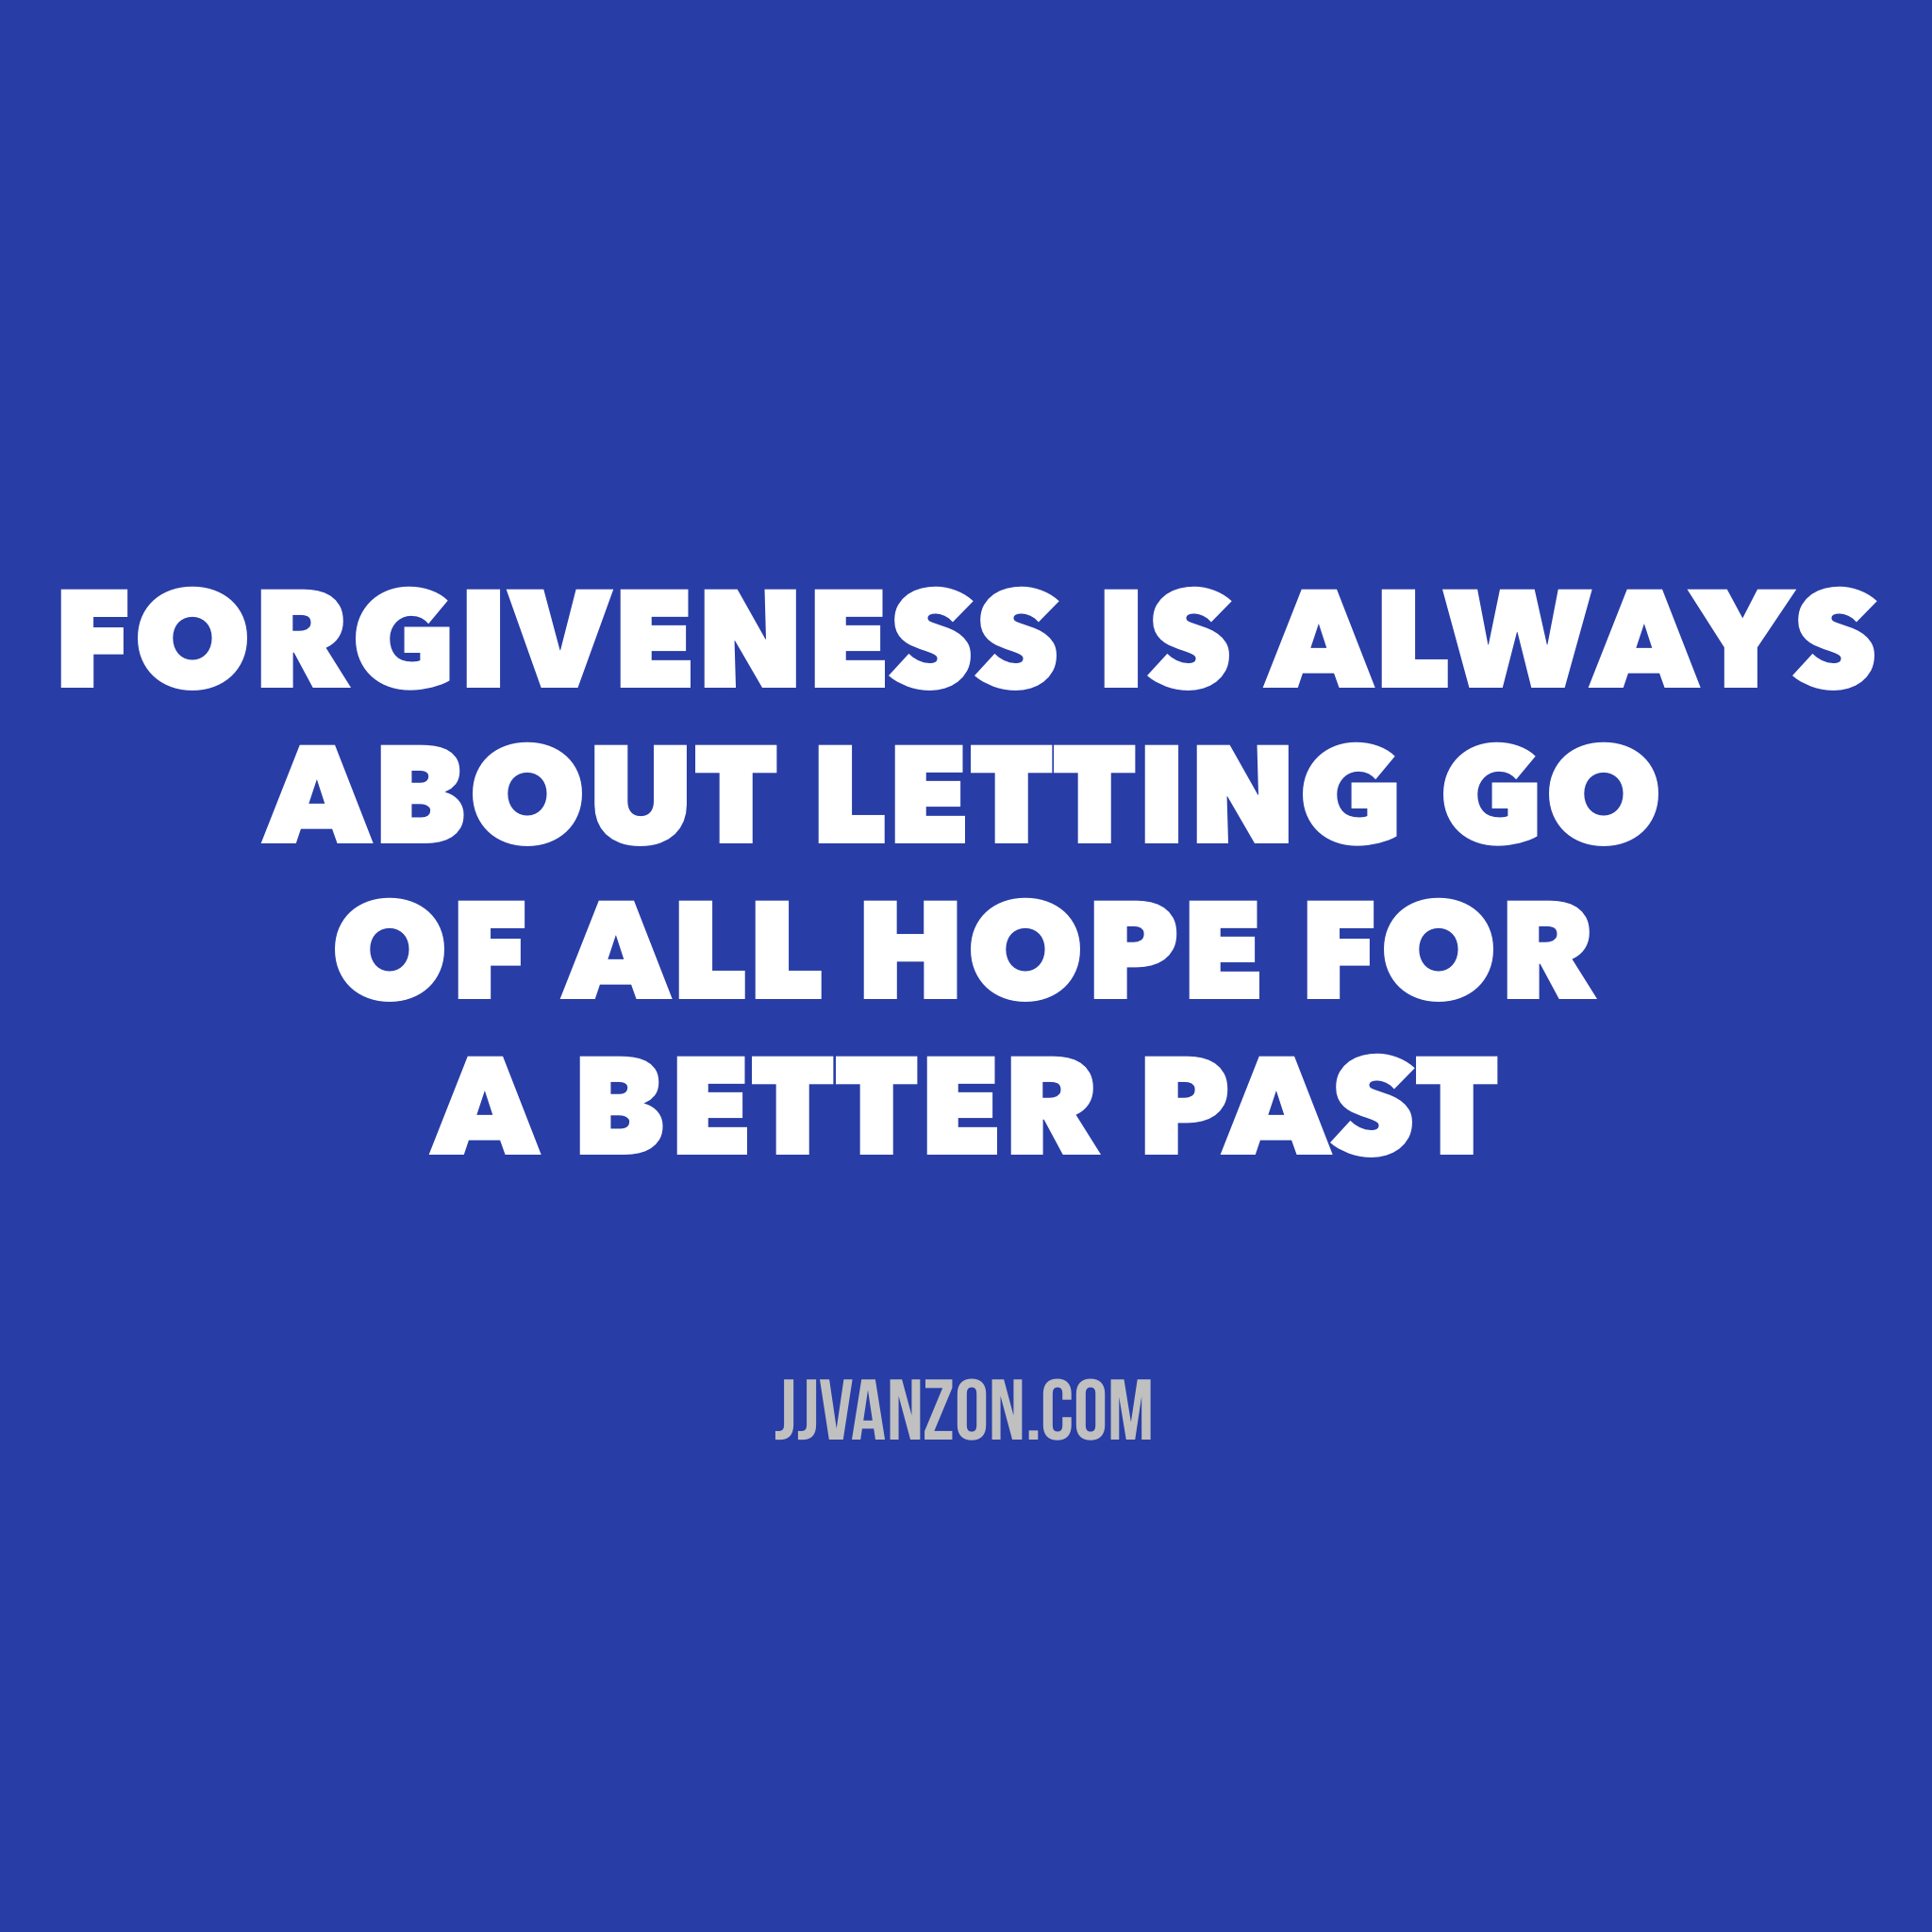 Blog post image, Forgiveness is always about letting go of all hope for a better past, quote of Willem Glaudemans